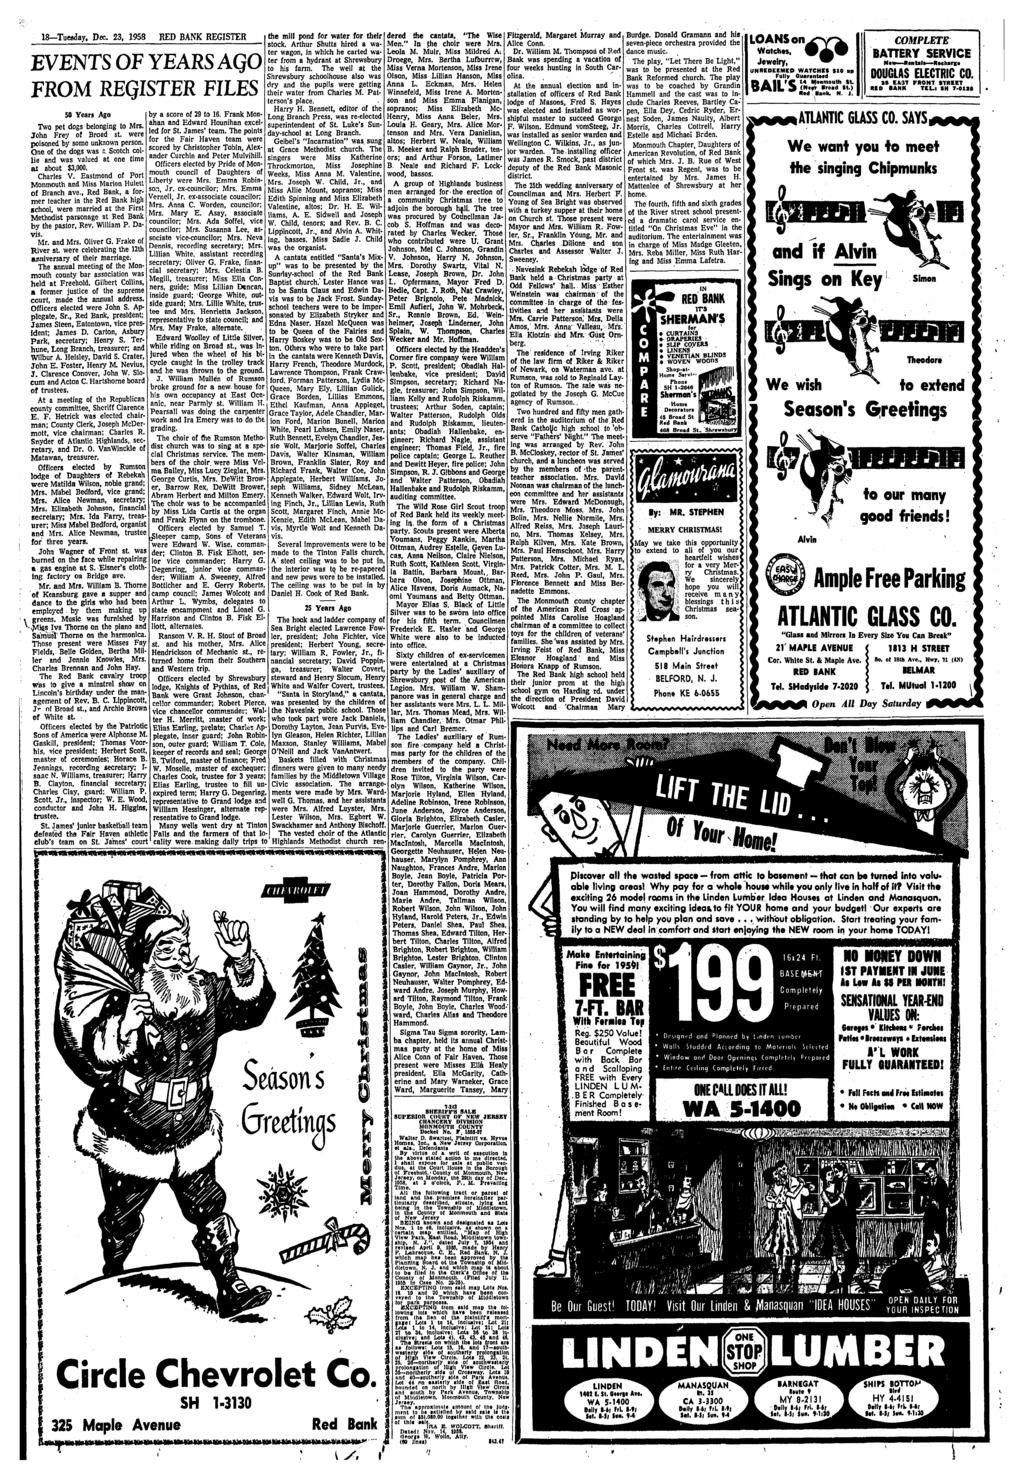 Red Bank Register Iceboating On The River Two From Servo Extension Cord Snaps Wiring Chuck Plug Holder Alex Nld 18 Tuwday Dec 23 1958 Events Of Years Aqo